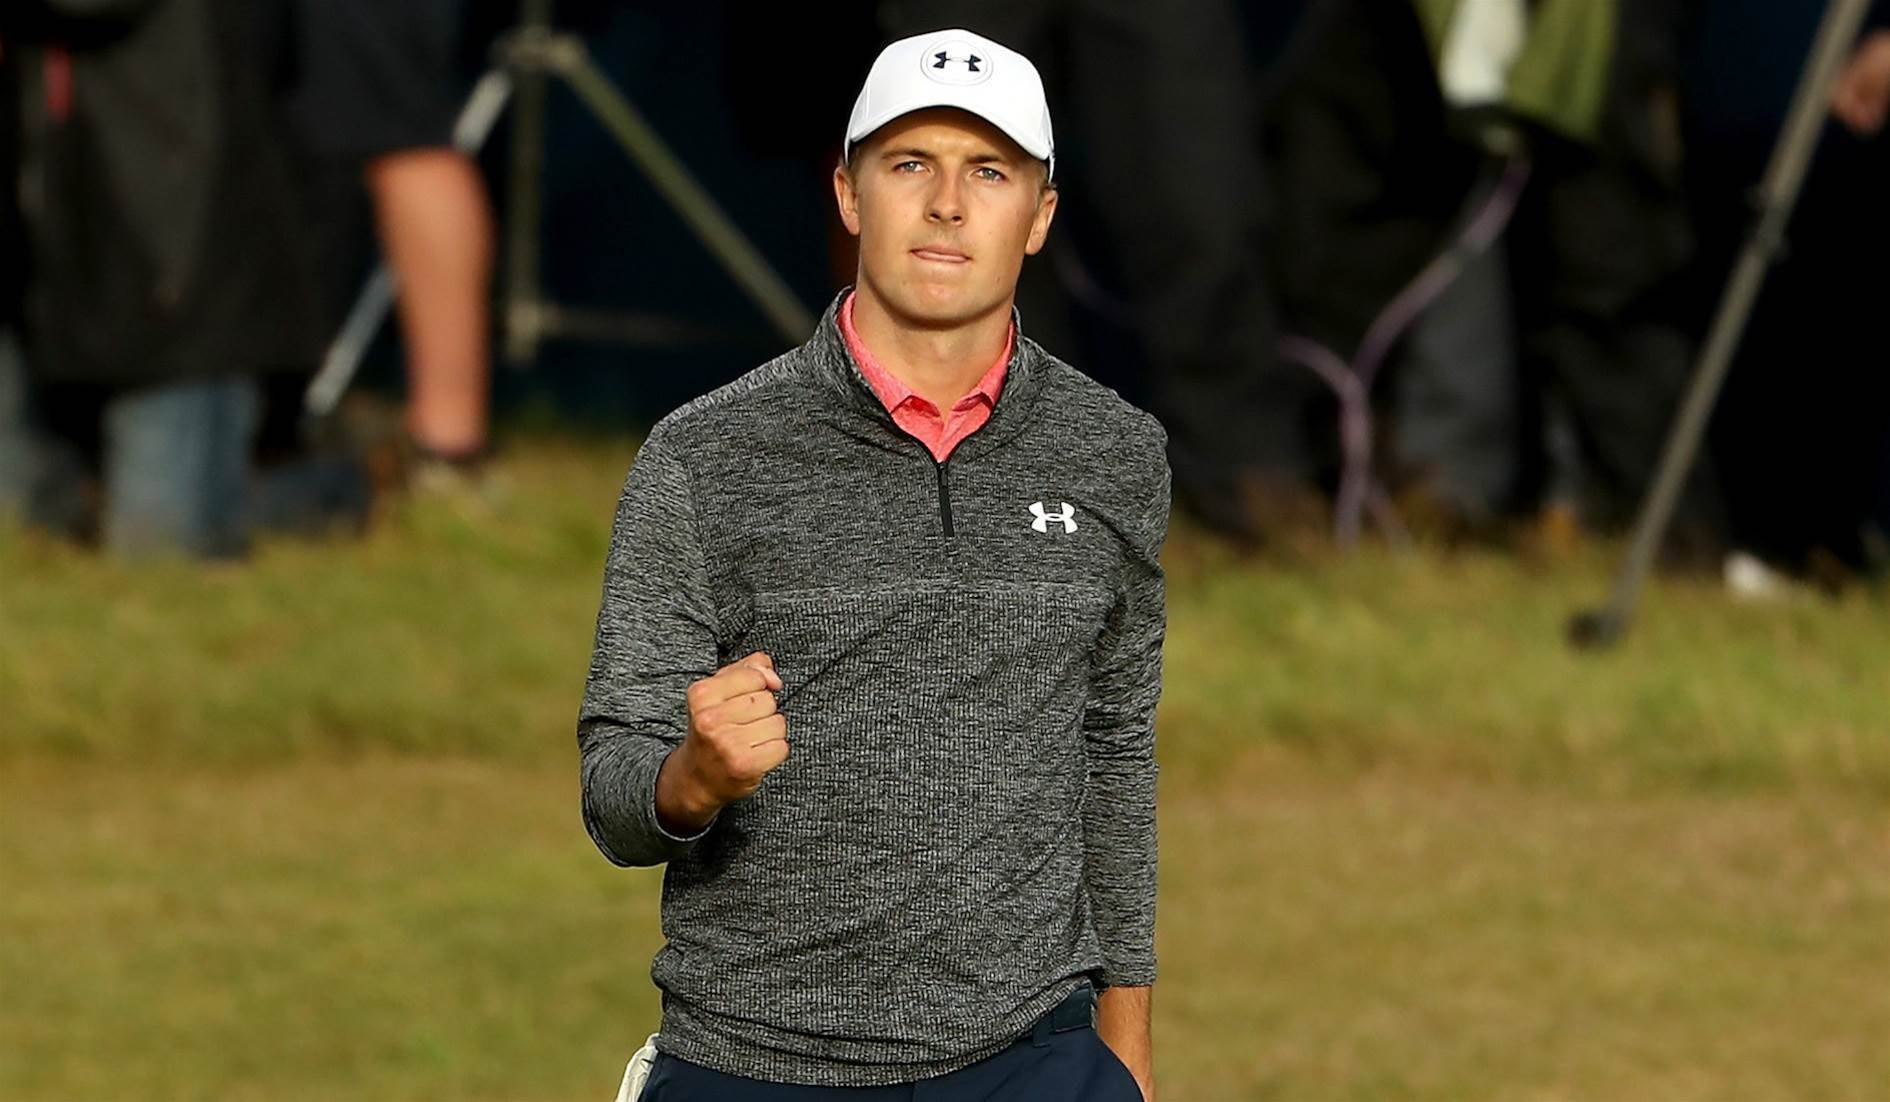 THE OPEN: Spieth has one hand on the Claret Jug